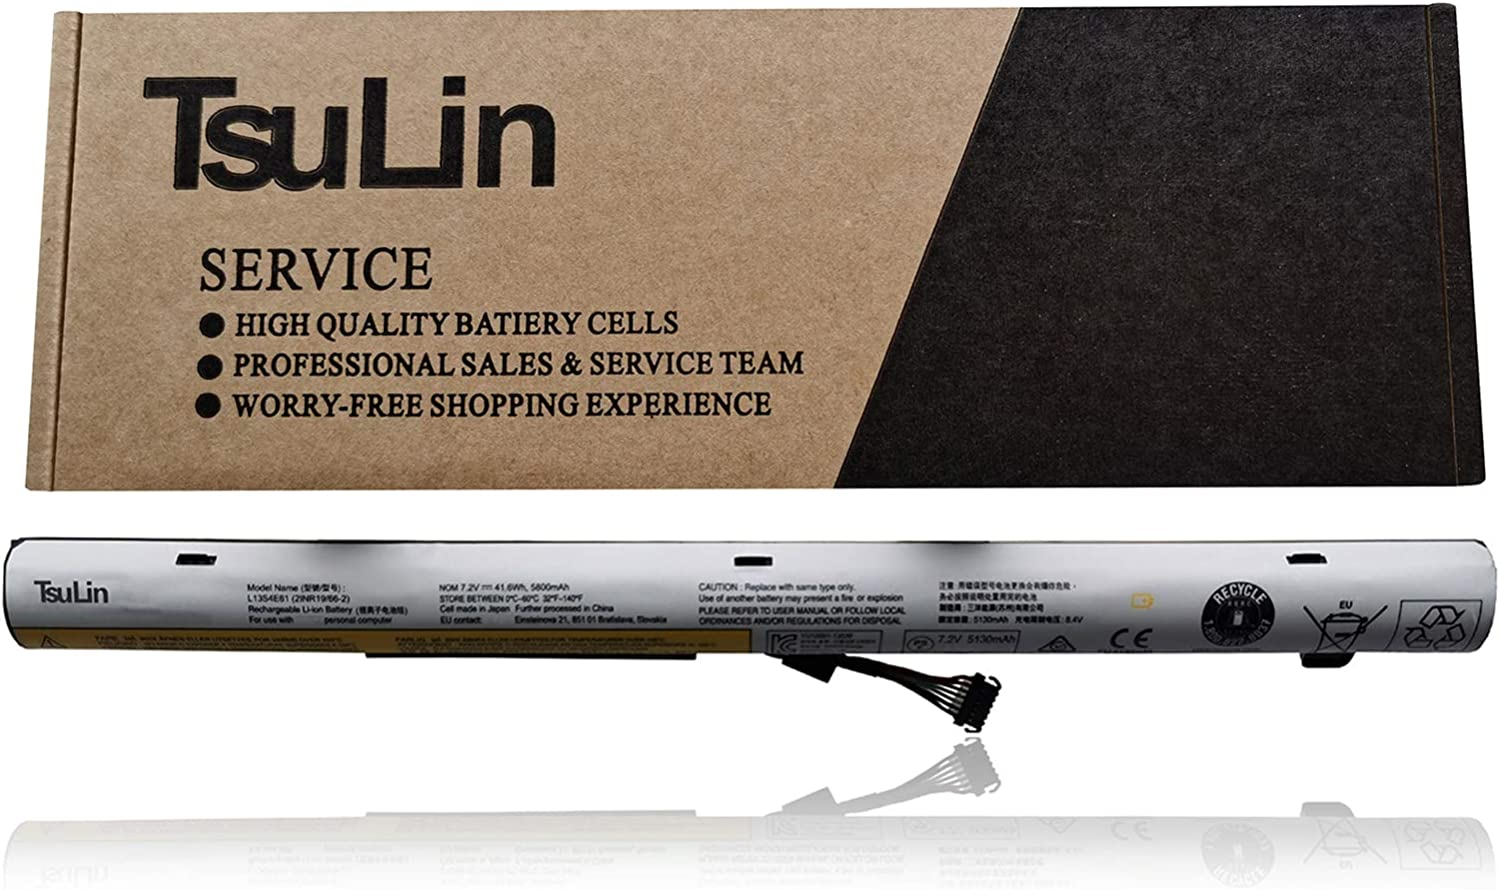 TsuLin L13S4E61 Laptop Battery Replacement for Lenovo M50-70 Flex 2-14 2-14D 2-15 2-15D Series Notebook L13L4E61 L13M4E61 L13S4A61 L13L4A61 L13M4A61 7.2V 41.6Wh 5800mAh